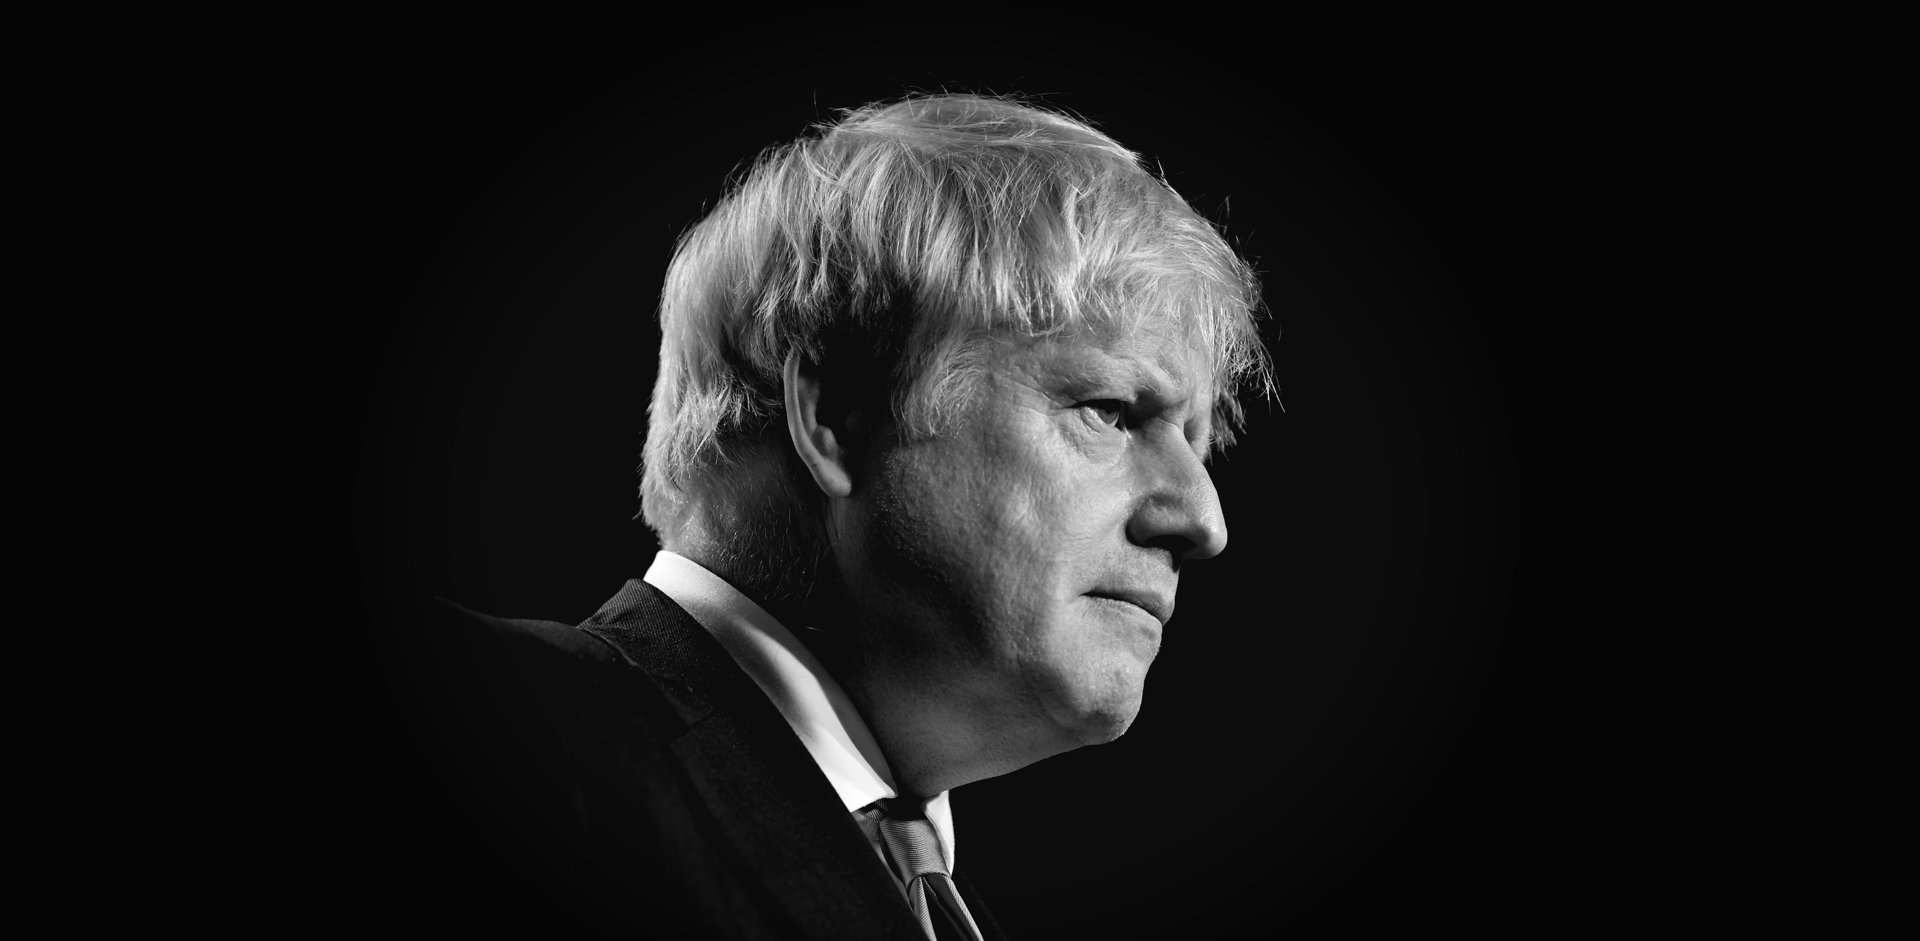 A portrait of Boris Johnson